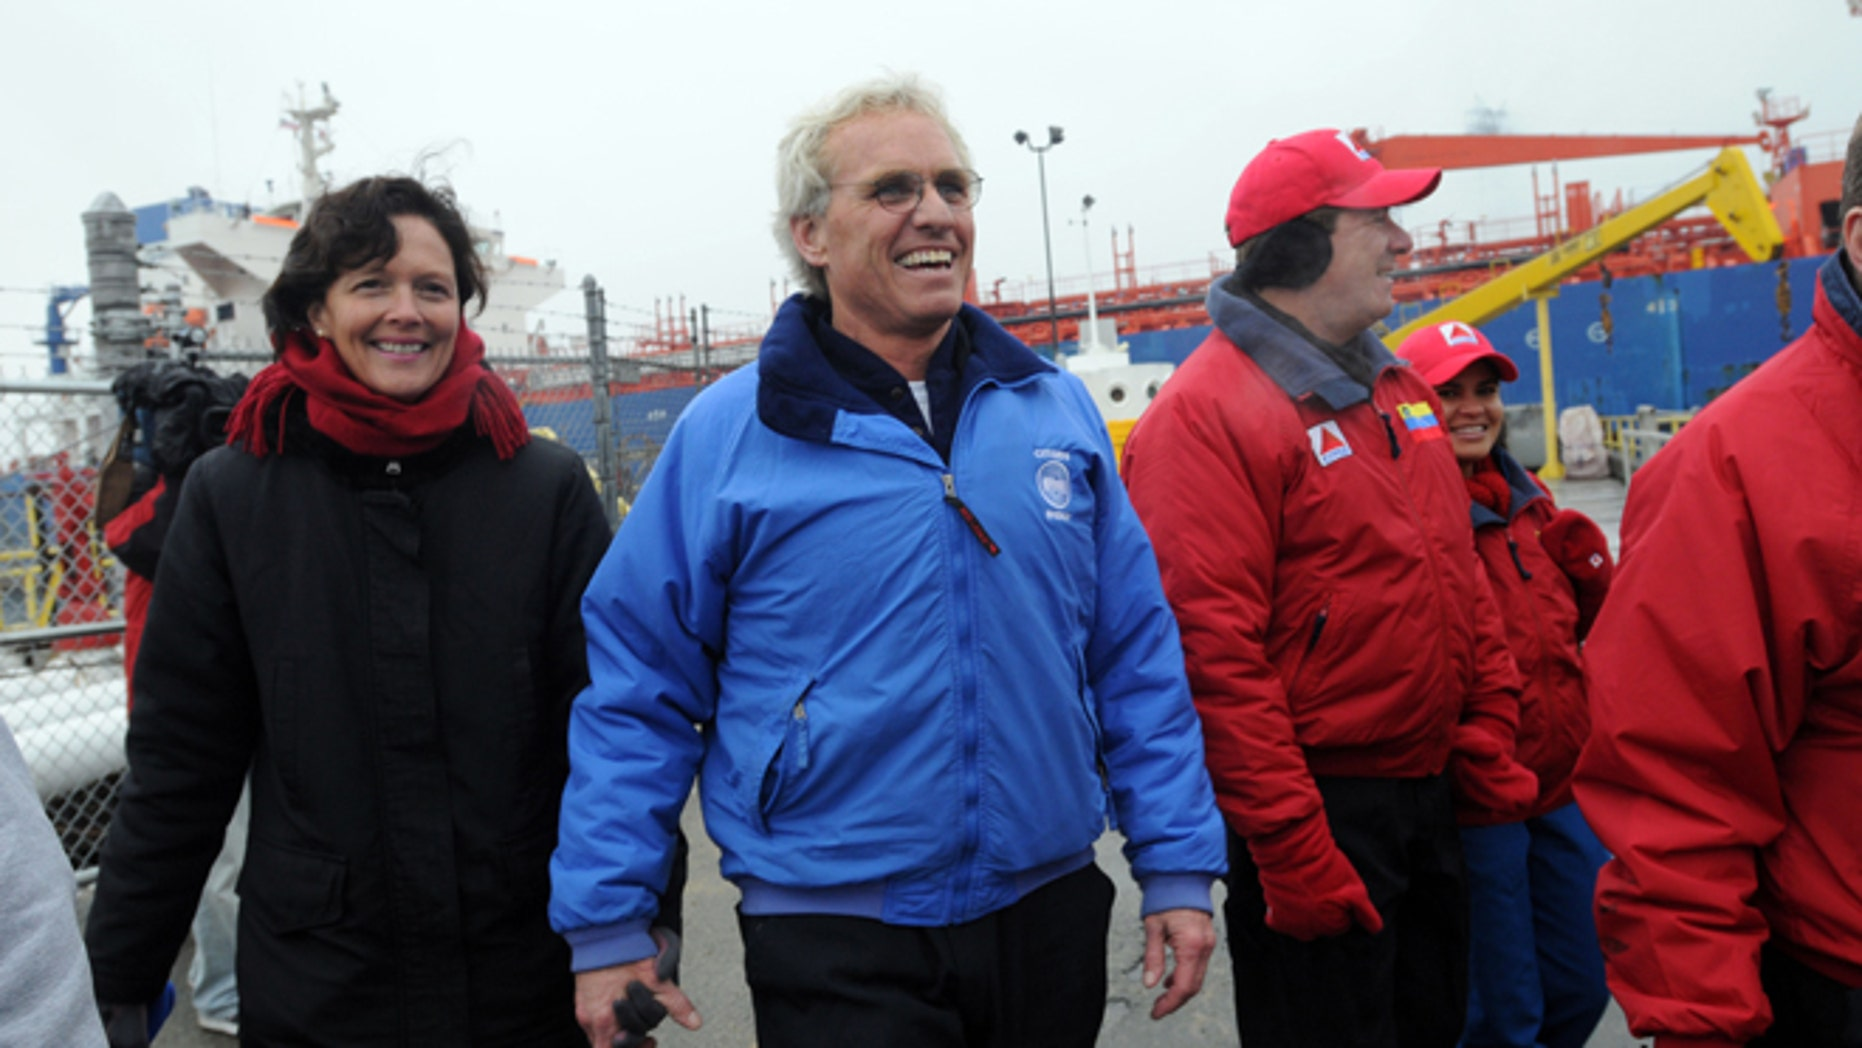 BRAINTREE, MA - DECEMBER 10:  Citizens Energy Chairman Joseph Kennedy and his wife Beth walk into Citgo Braintree Terminal after entering into Boston Harbor aboard the MS Simon, which was transporting low cost heating oil, December 10, 2007 in Braintree, Massachusetts. The oil, arriving from Venezuela, will be distributed through Citizens Energy to low income households in the United States at a 40 percent discount.  (Photo by Darren McCollester/Getty Images)